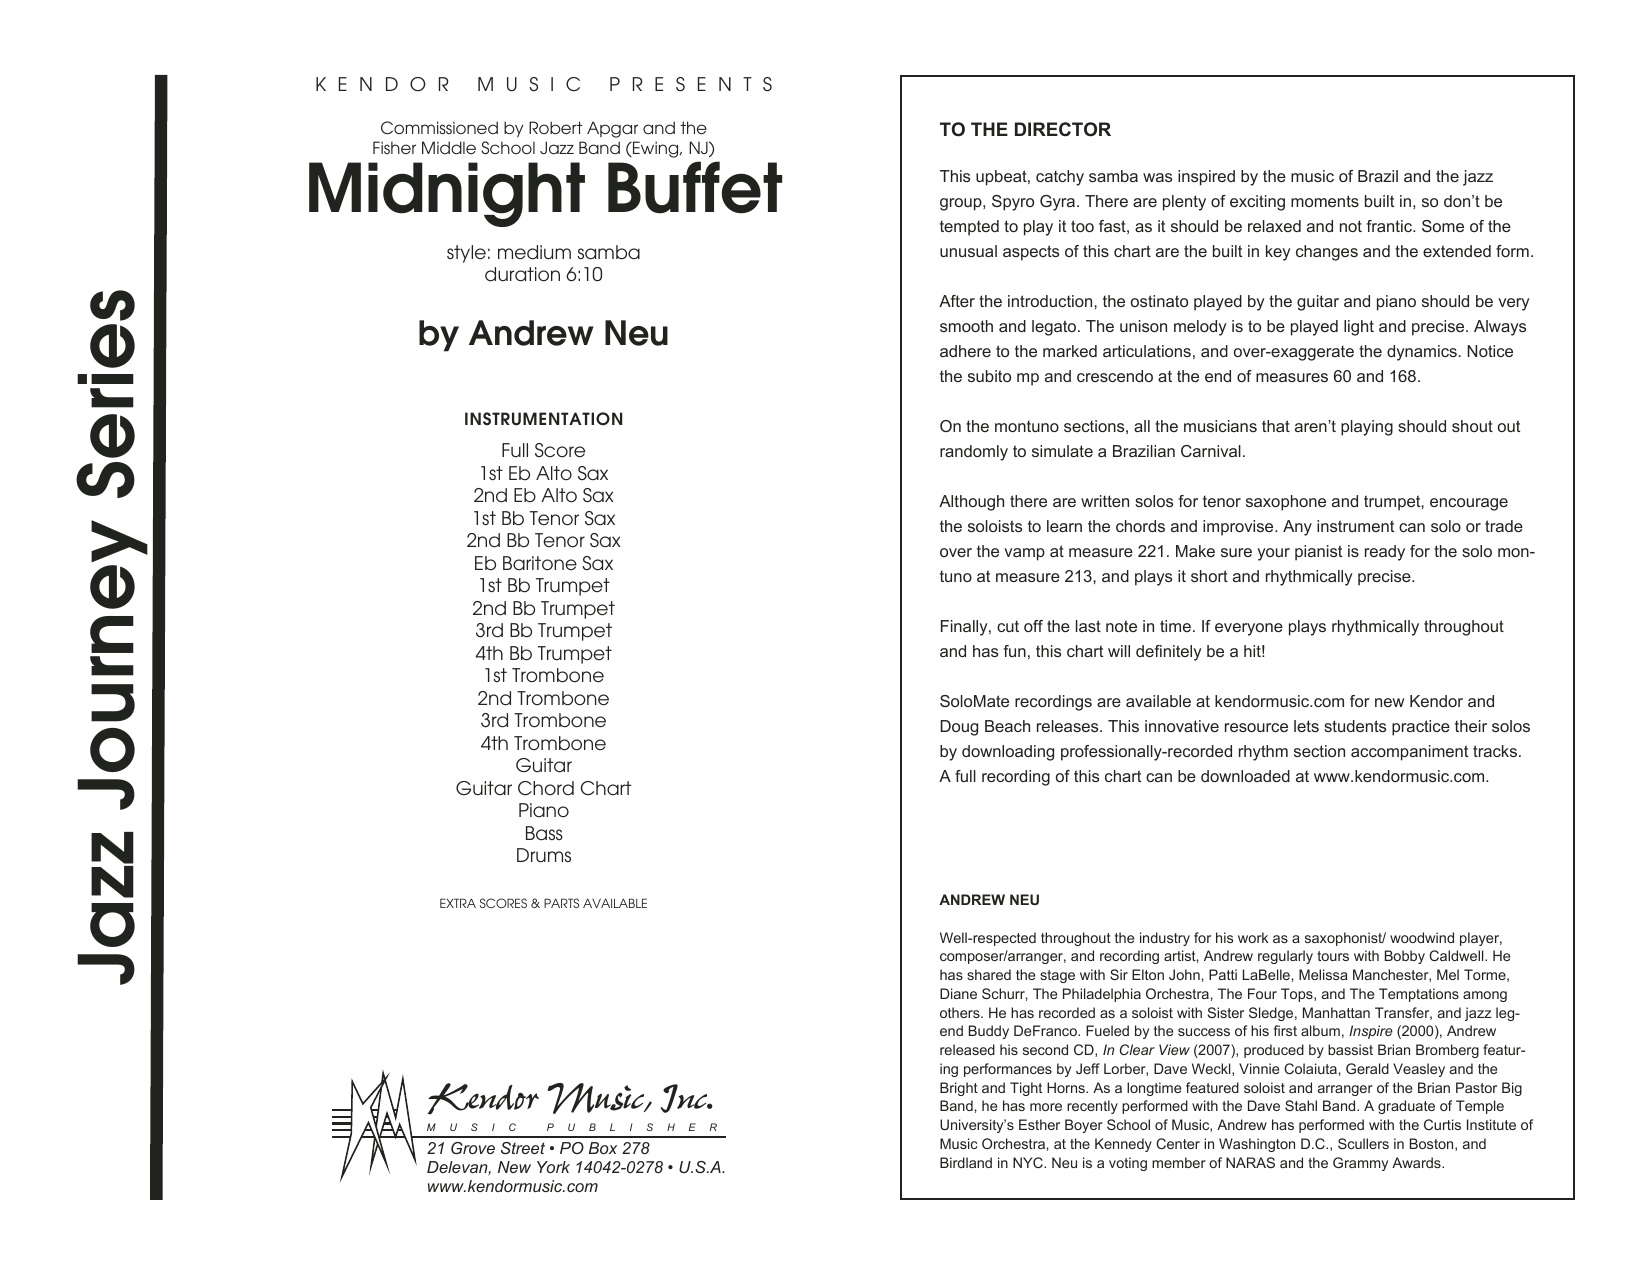 Midnight Buffet - Full Score Sheet Music